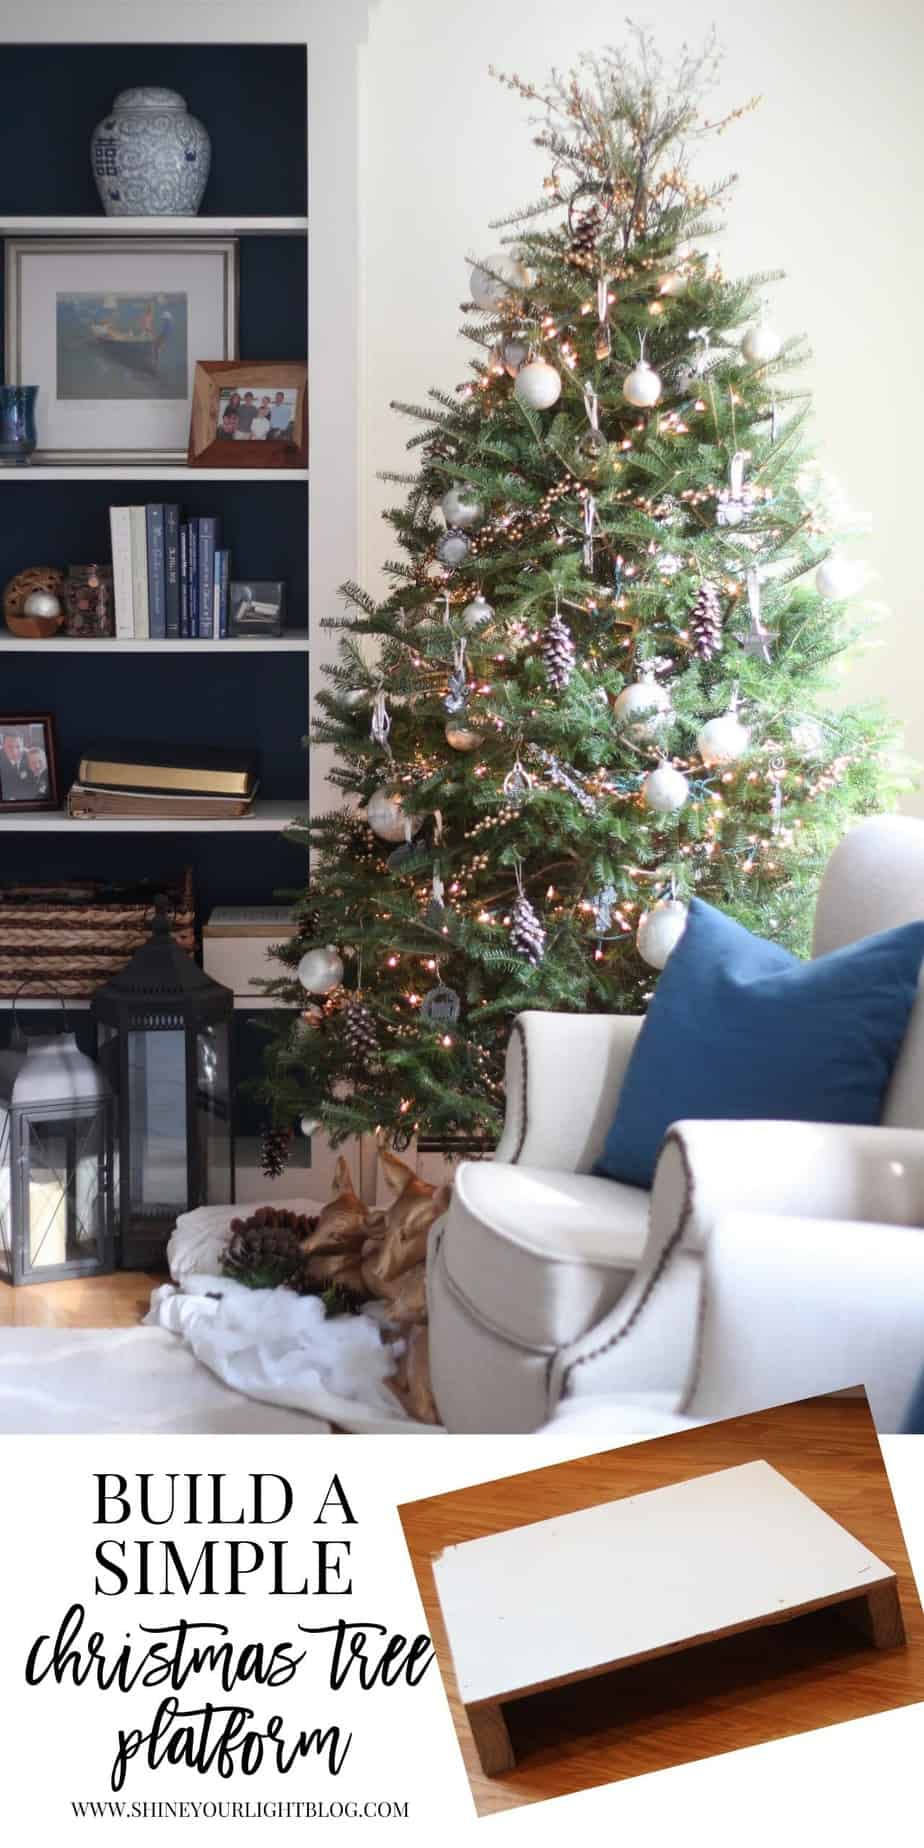 how to build a very simple christmas tree platform to raise up a small tree